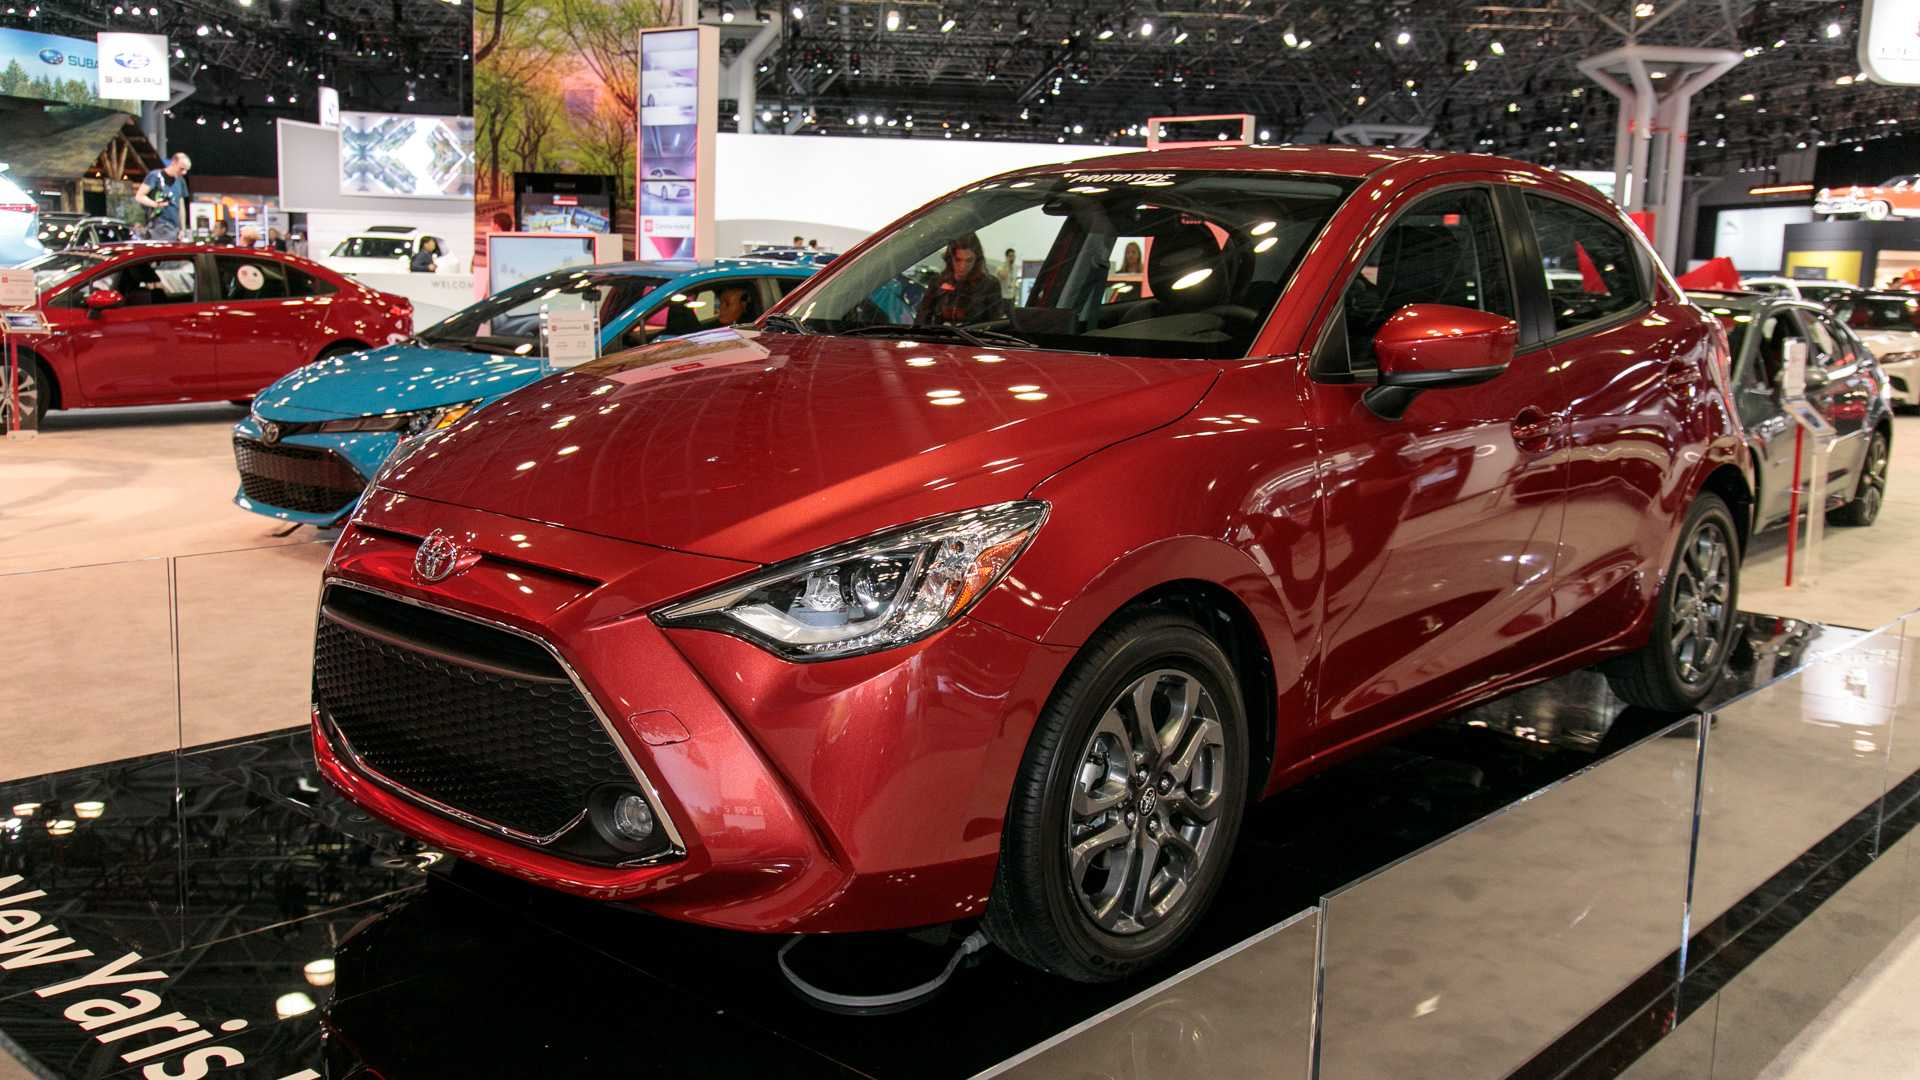 79 The Best 2020 Toyota Yaris New Concept